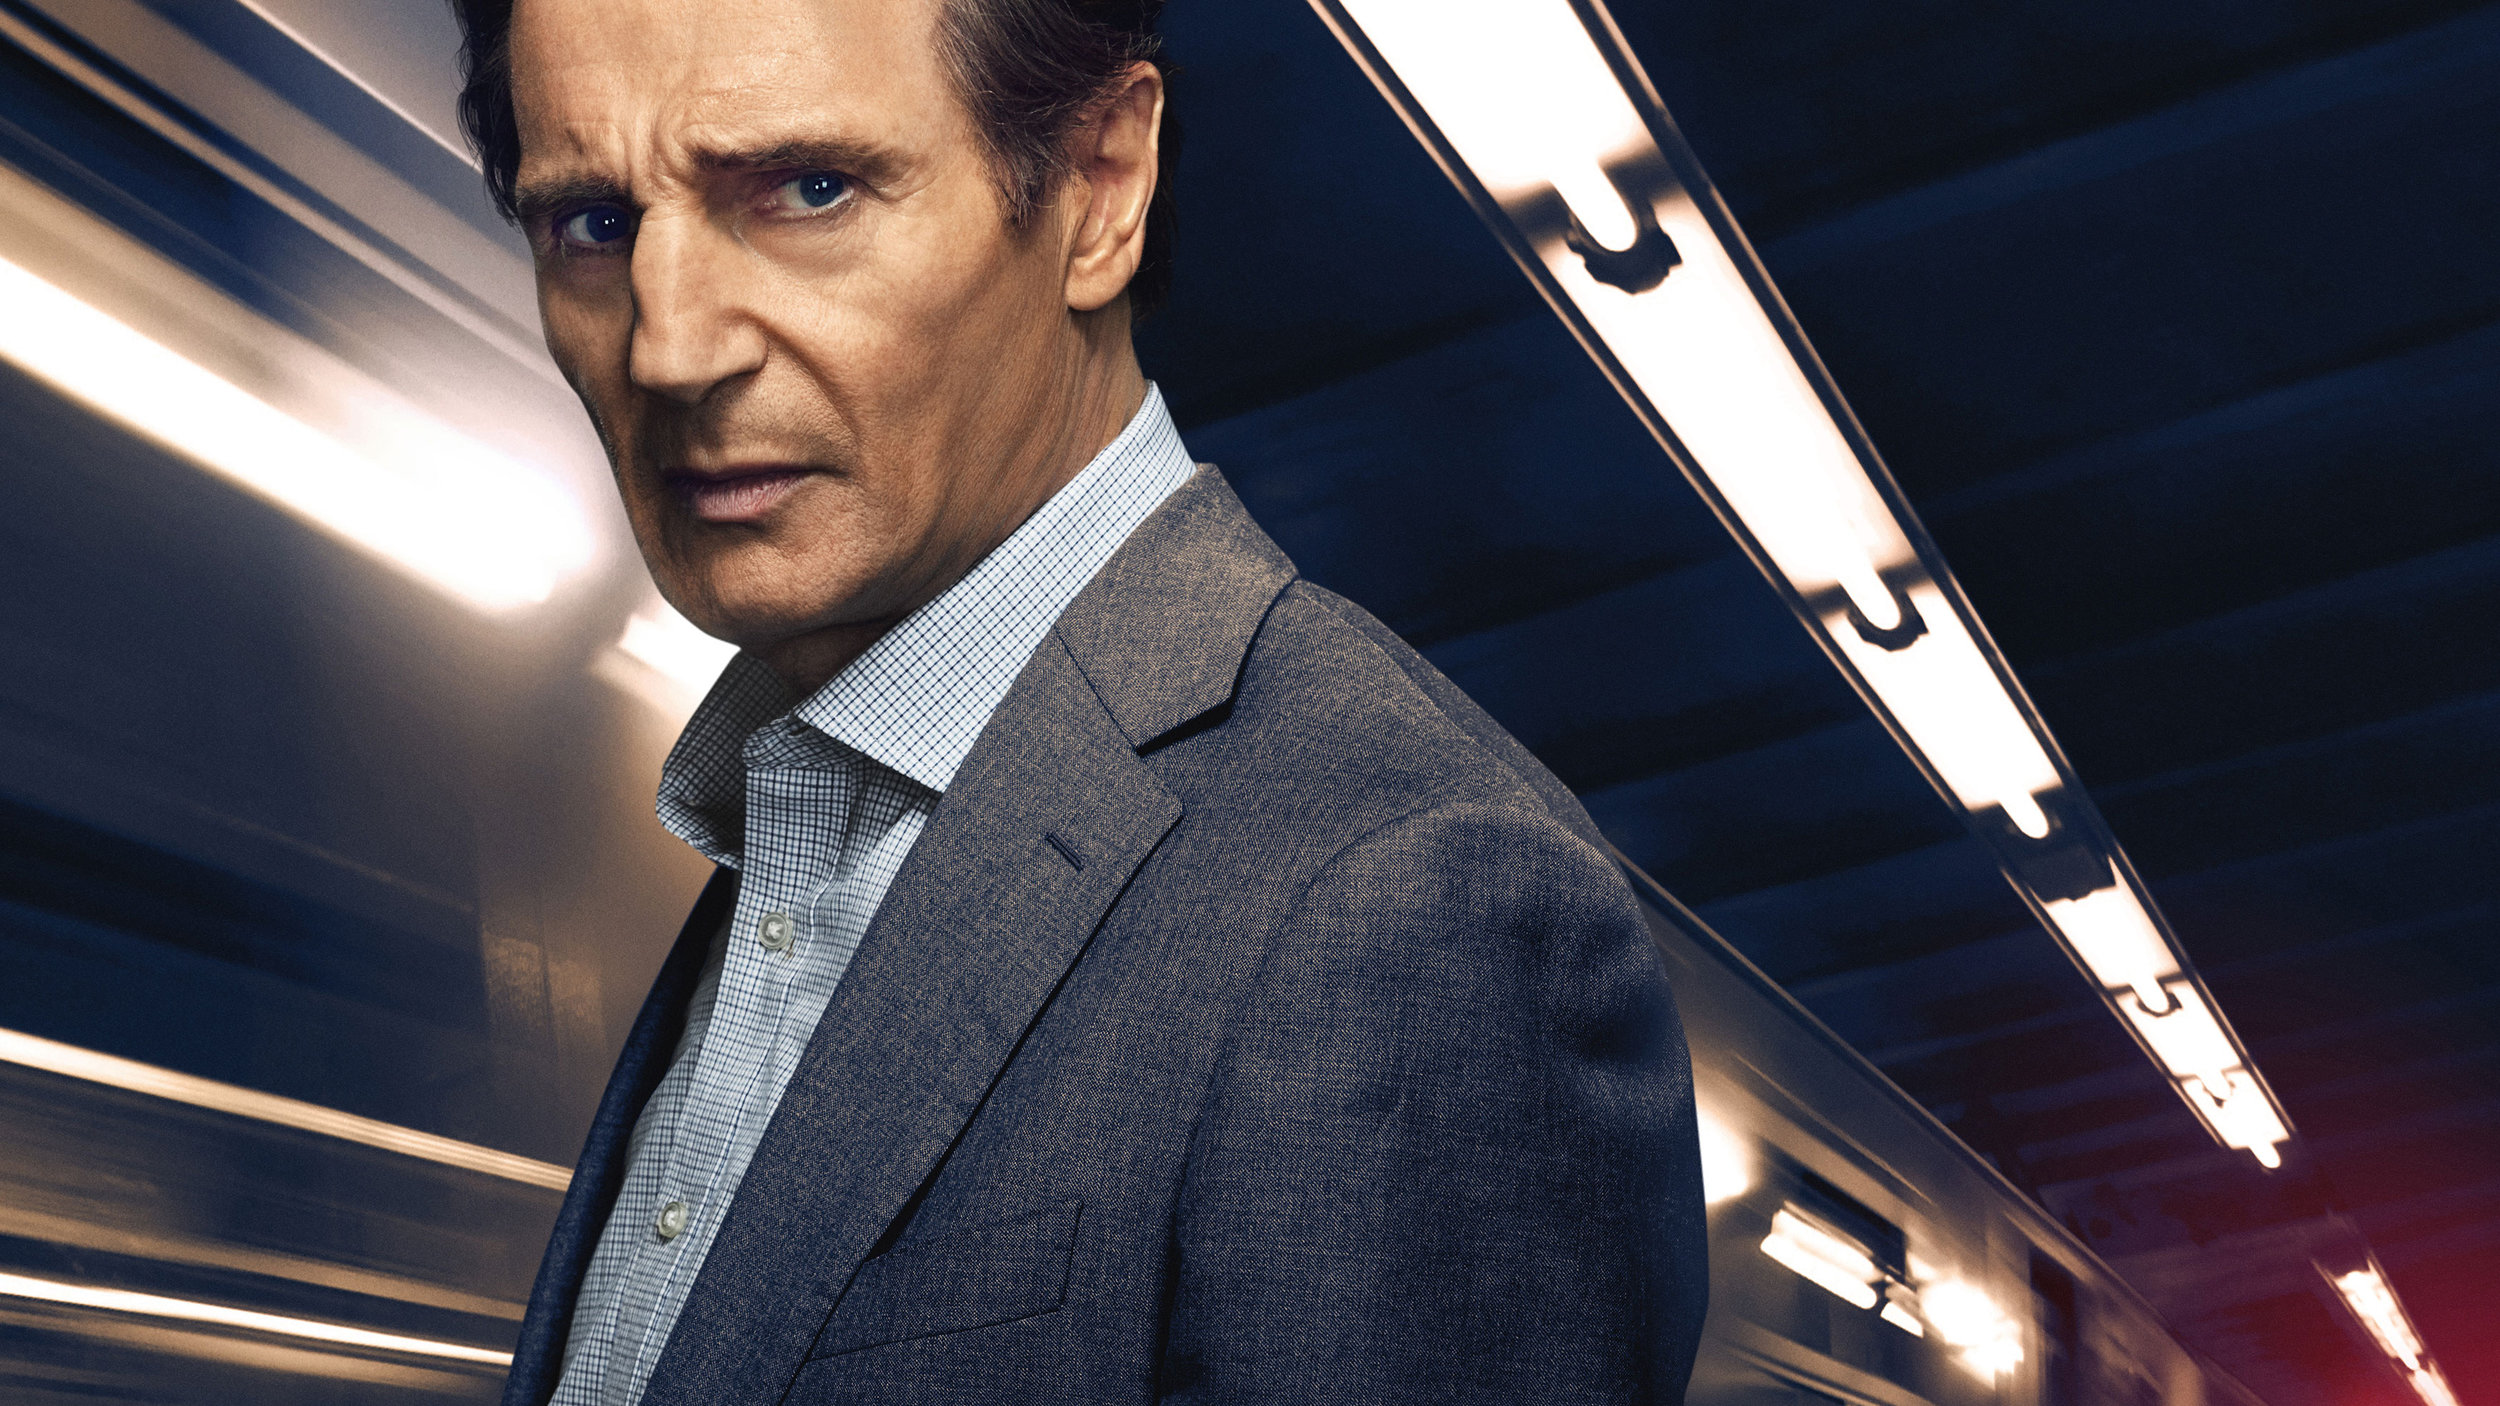 the-commuter-3500x1969-liam-neeson-2018-11562.jpg